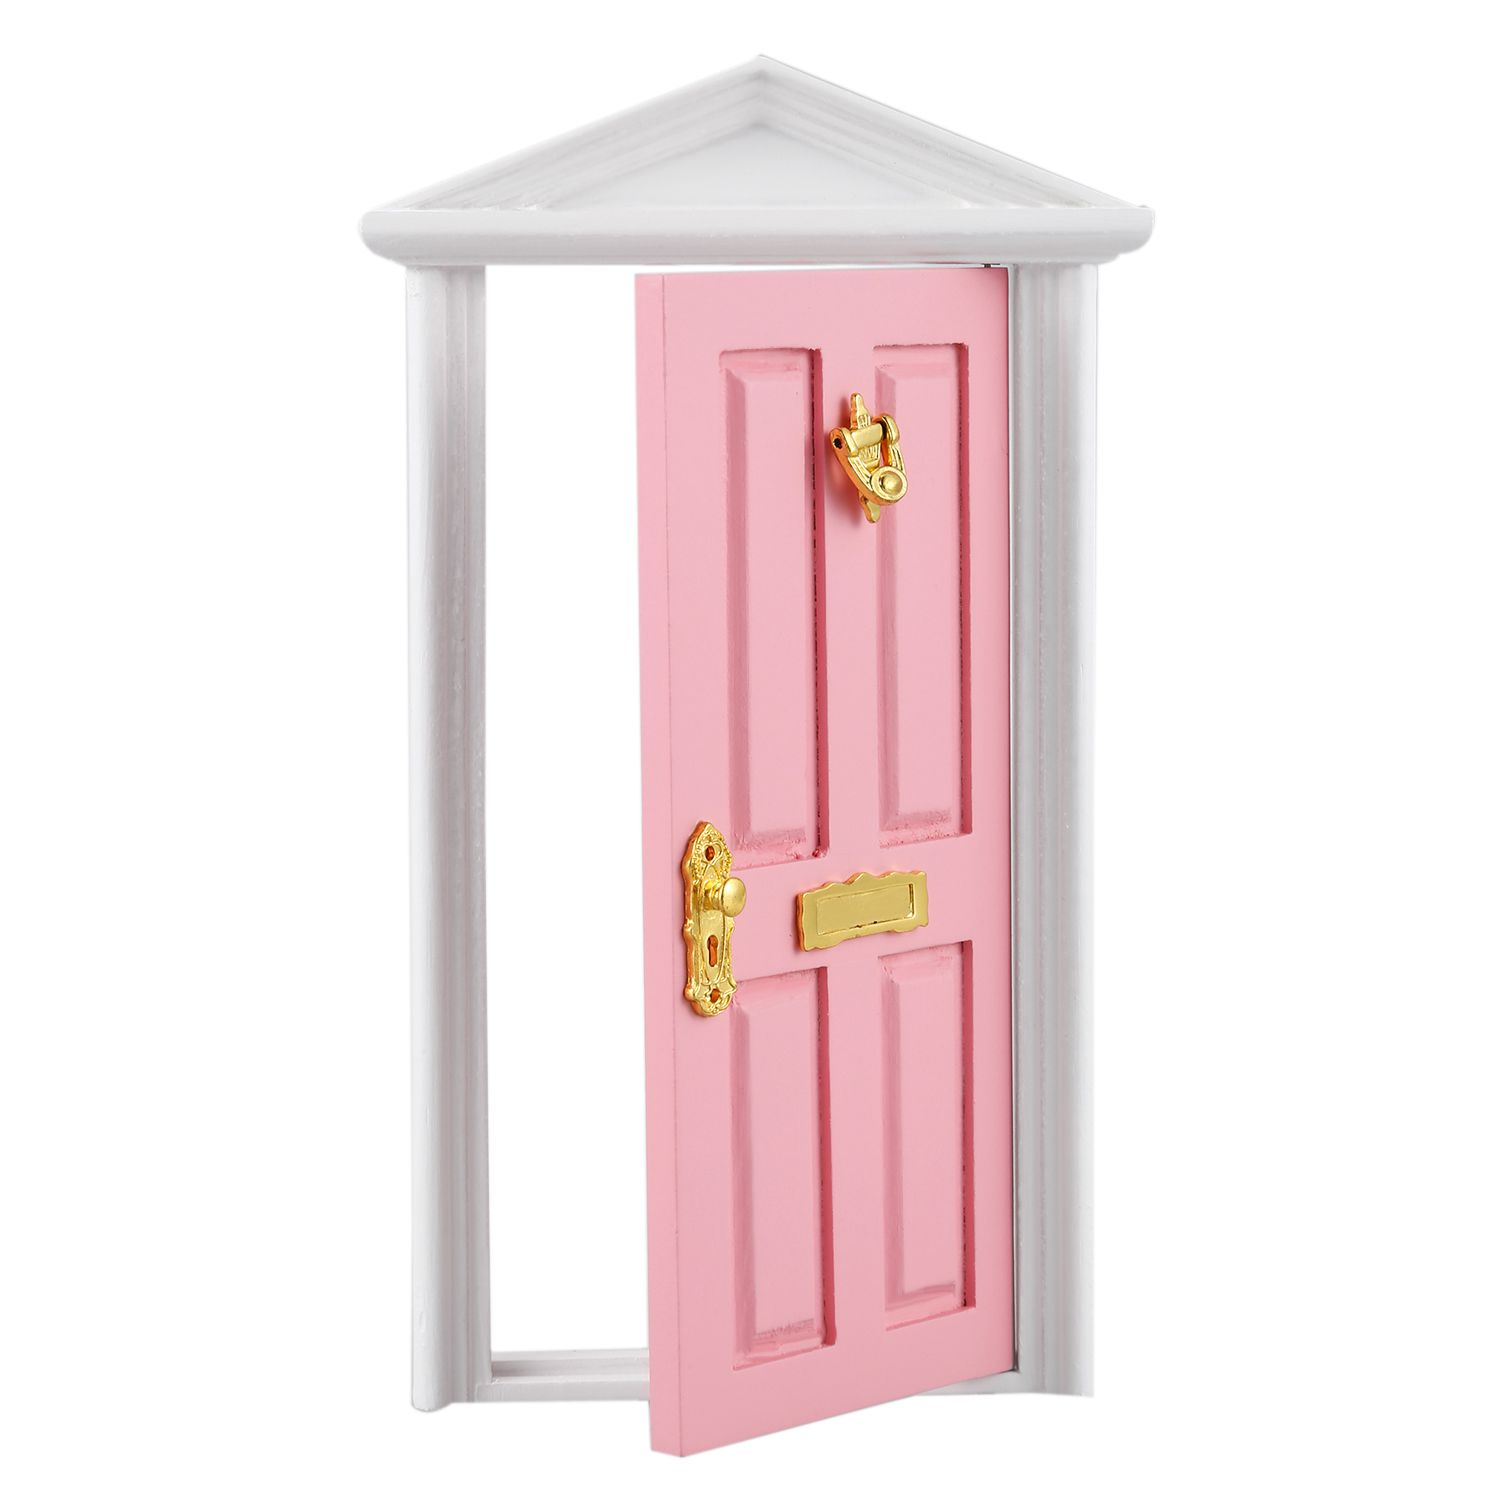 Miniature Doll Houses Games Toys Wooden Door With Hardware